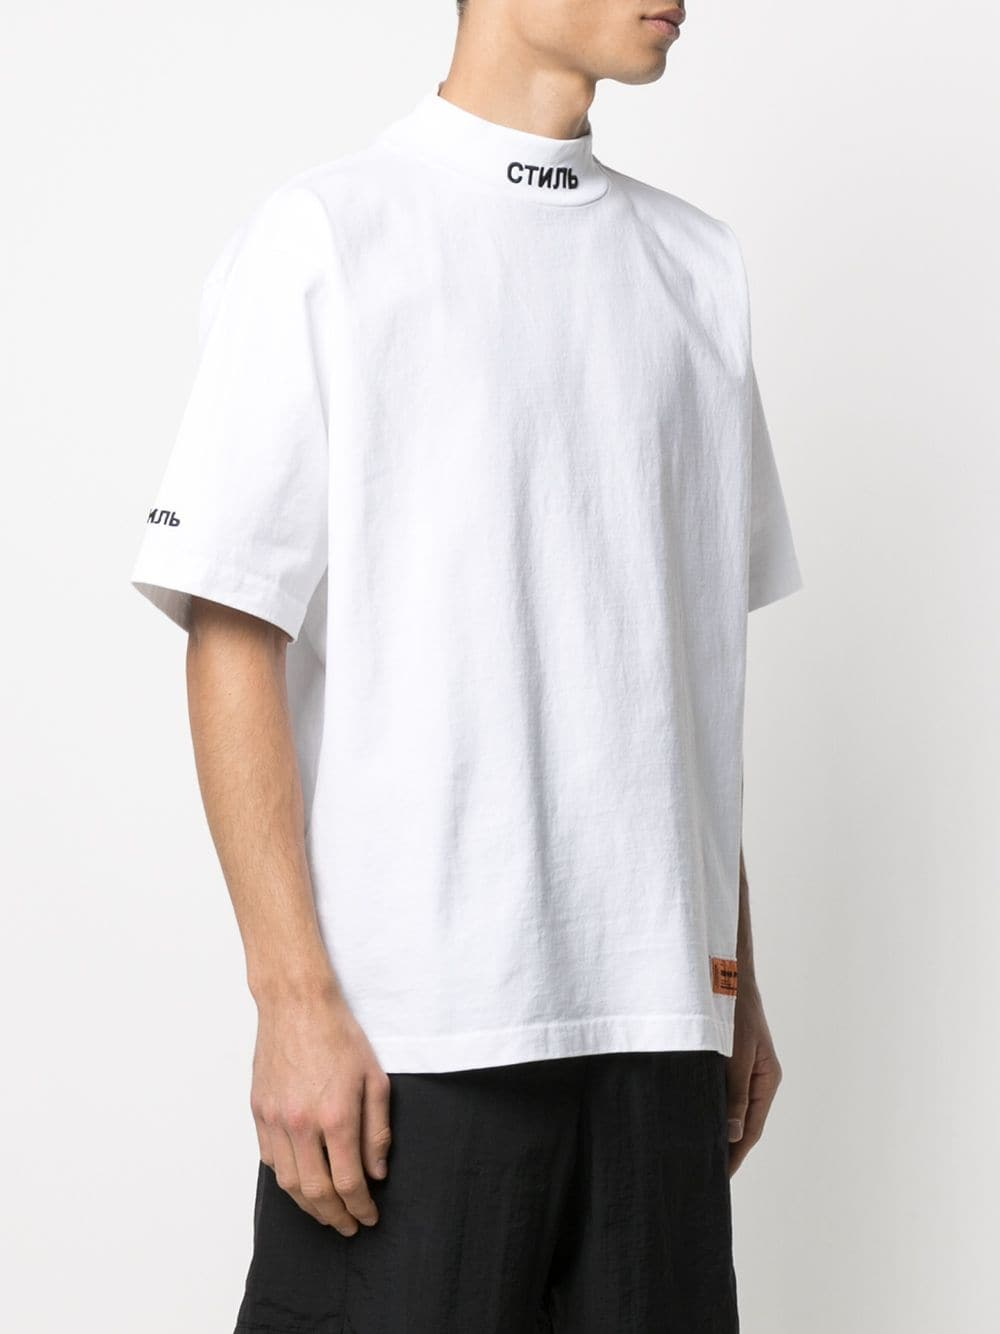 HERON PRESTON MEN SS TURTLENECK CTNMB WHITE BLACK